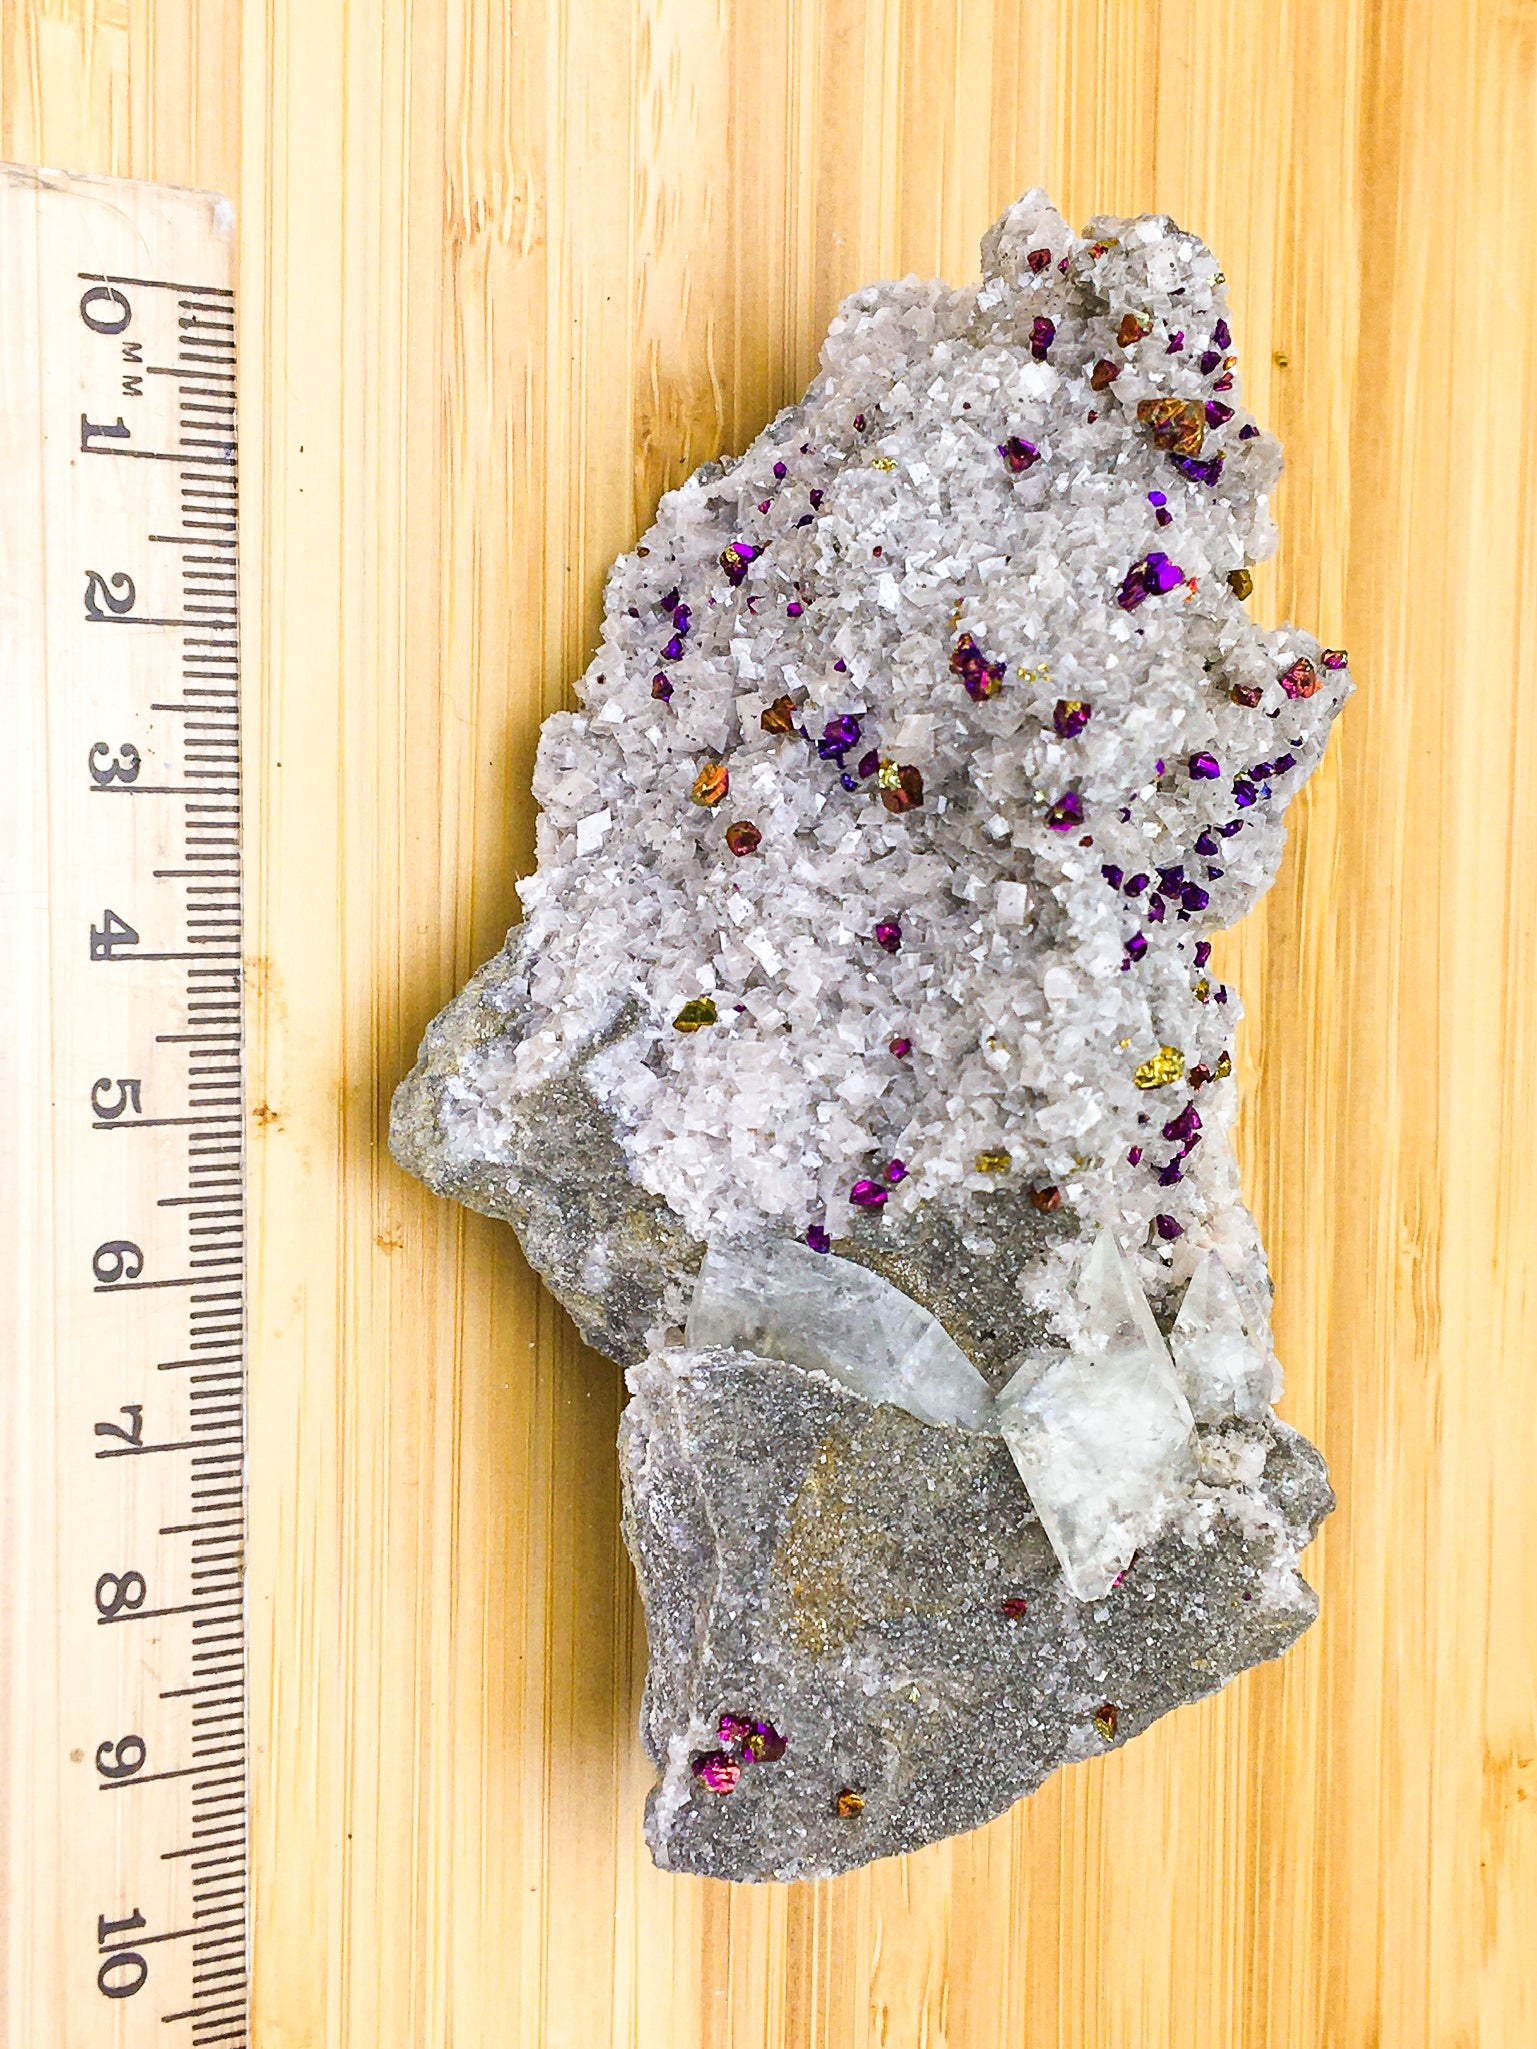 white tabular dolomite crystals, dogtooth calcite and irridescent purple and gold oxidised chalcopyrite. This sample is shown against a ruler. It is 10cm long